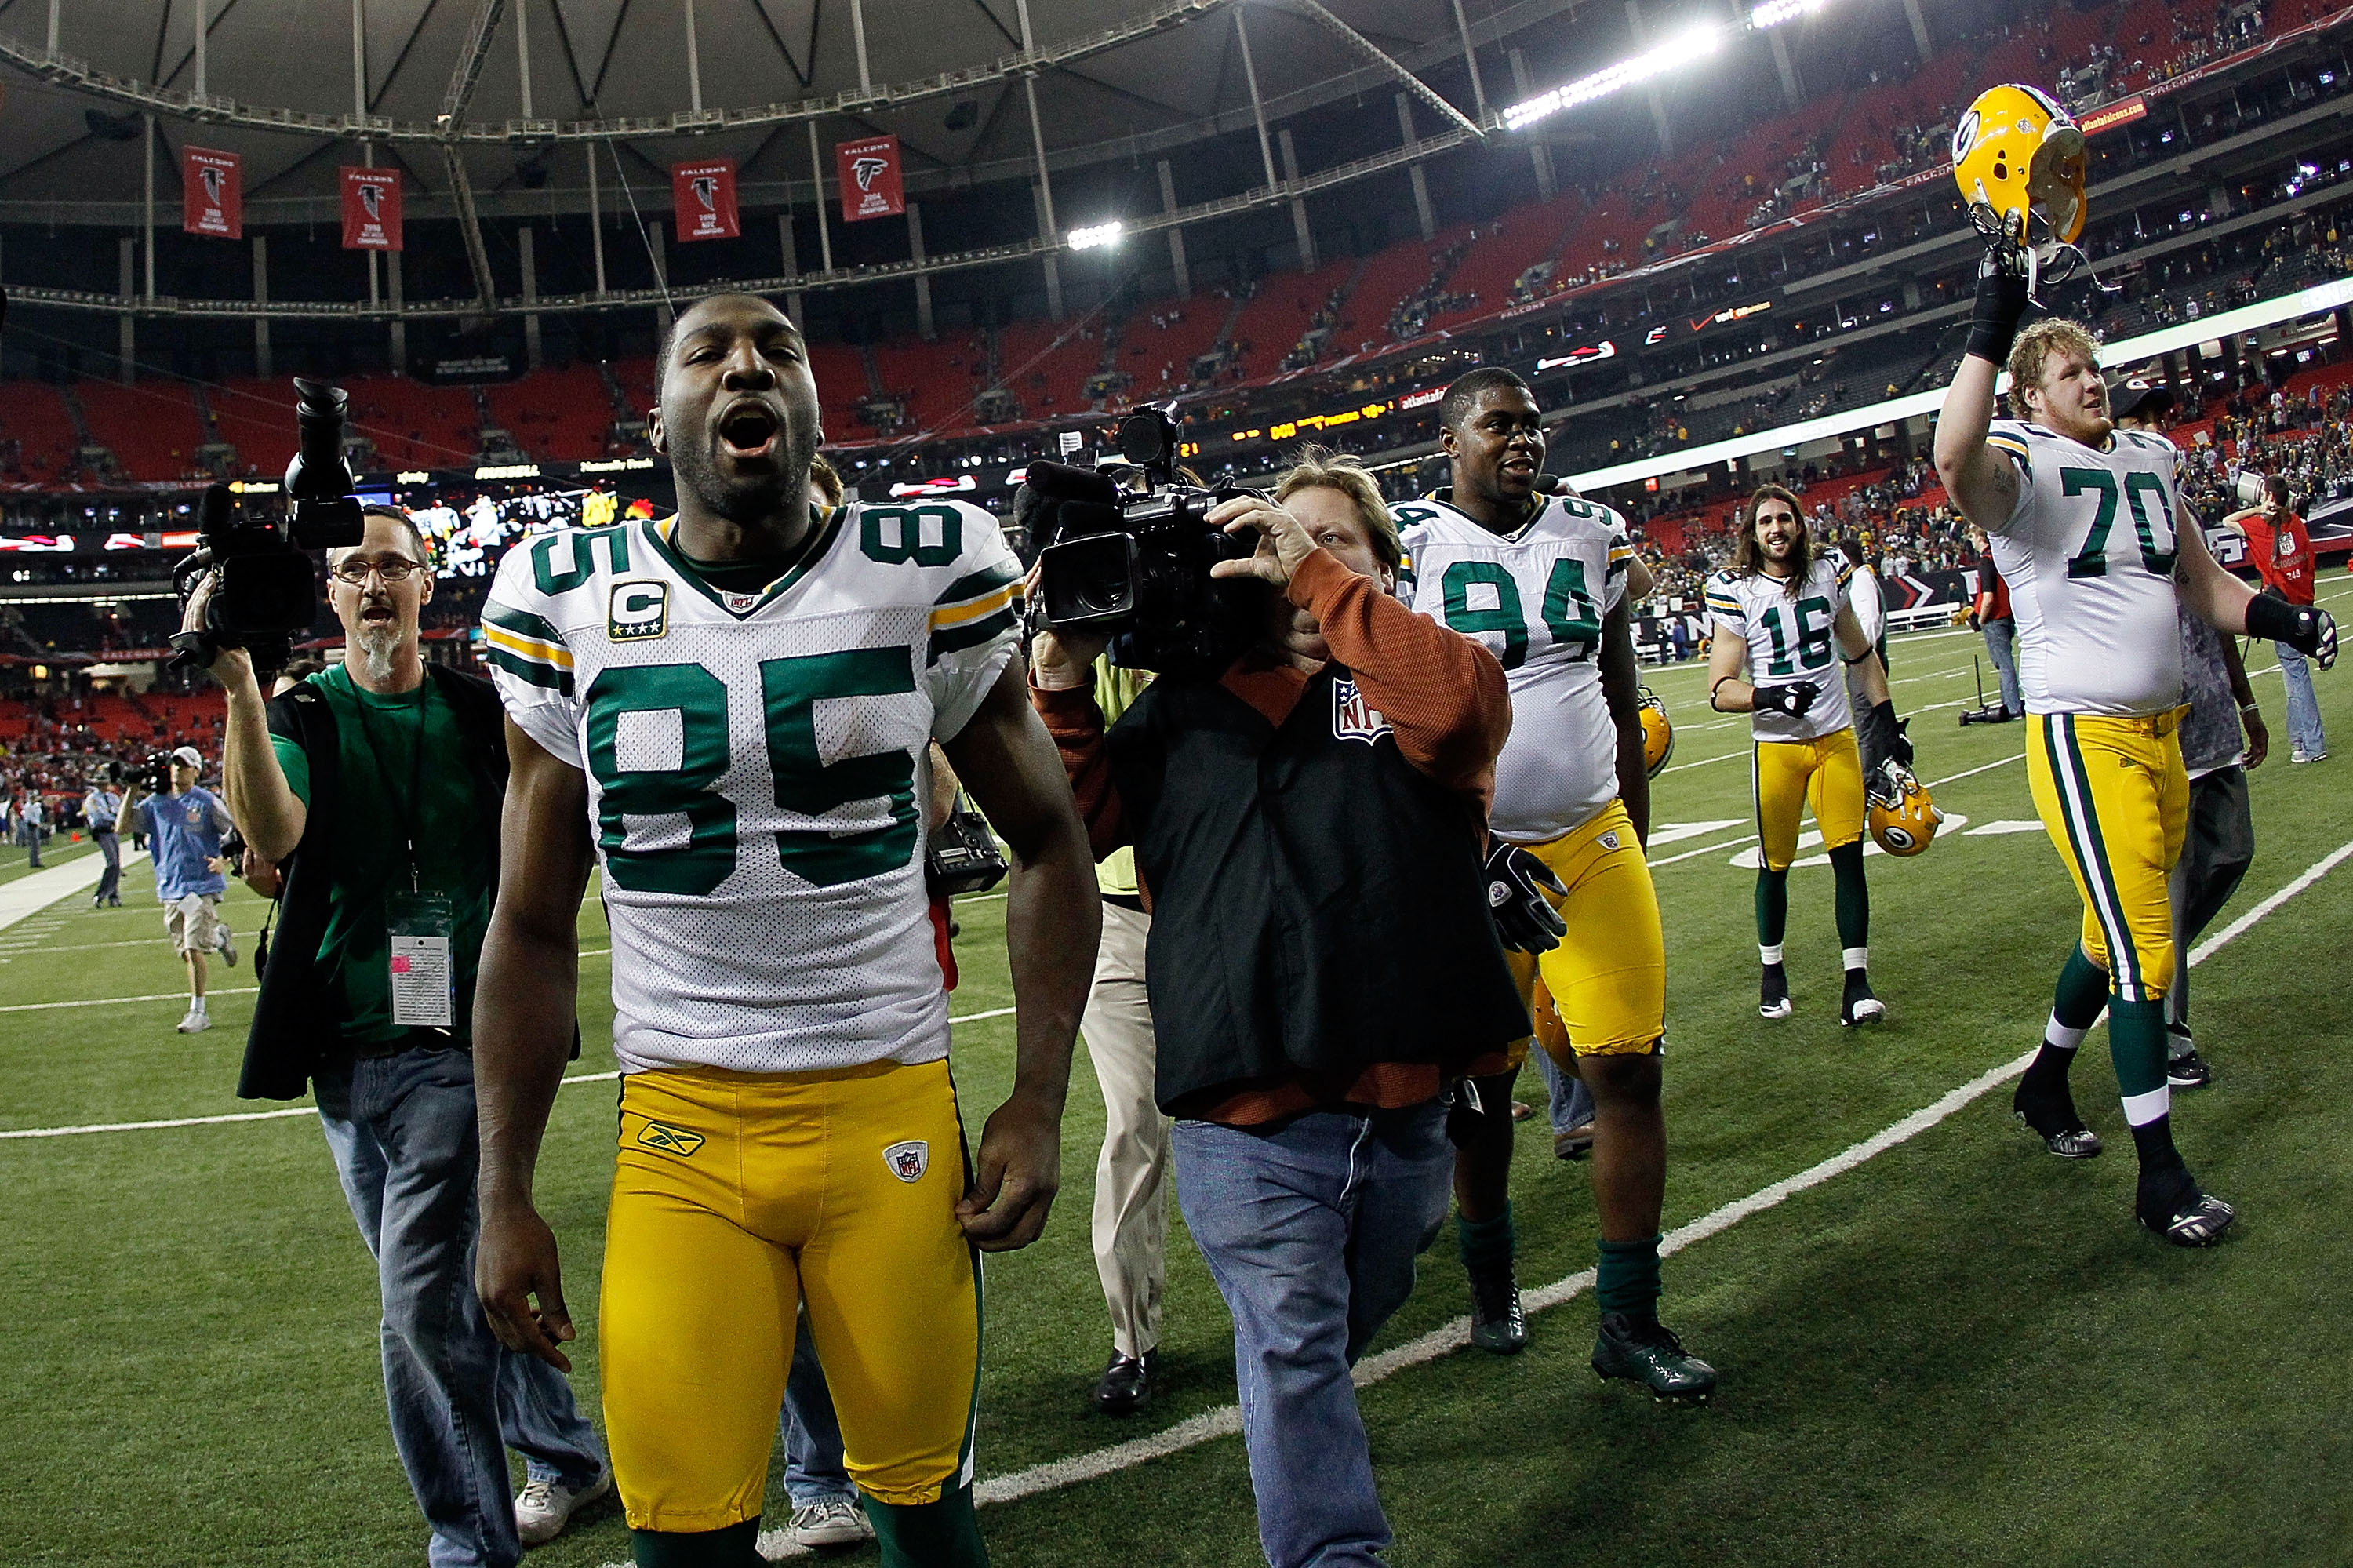 ATLANTA, GA - JANUARY 15:  (L-R) Greg Jennings #85, Jarius Wynn #94, Brett Swain #16 and T.J. Lang #70 of the Green Bay Packers celebrate as they walk off the field after the Packers won 48-21 against the Atlanta Falcons during their 2011 NFC divisional p